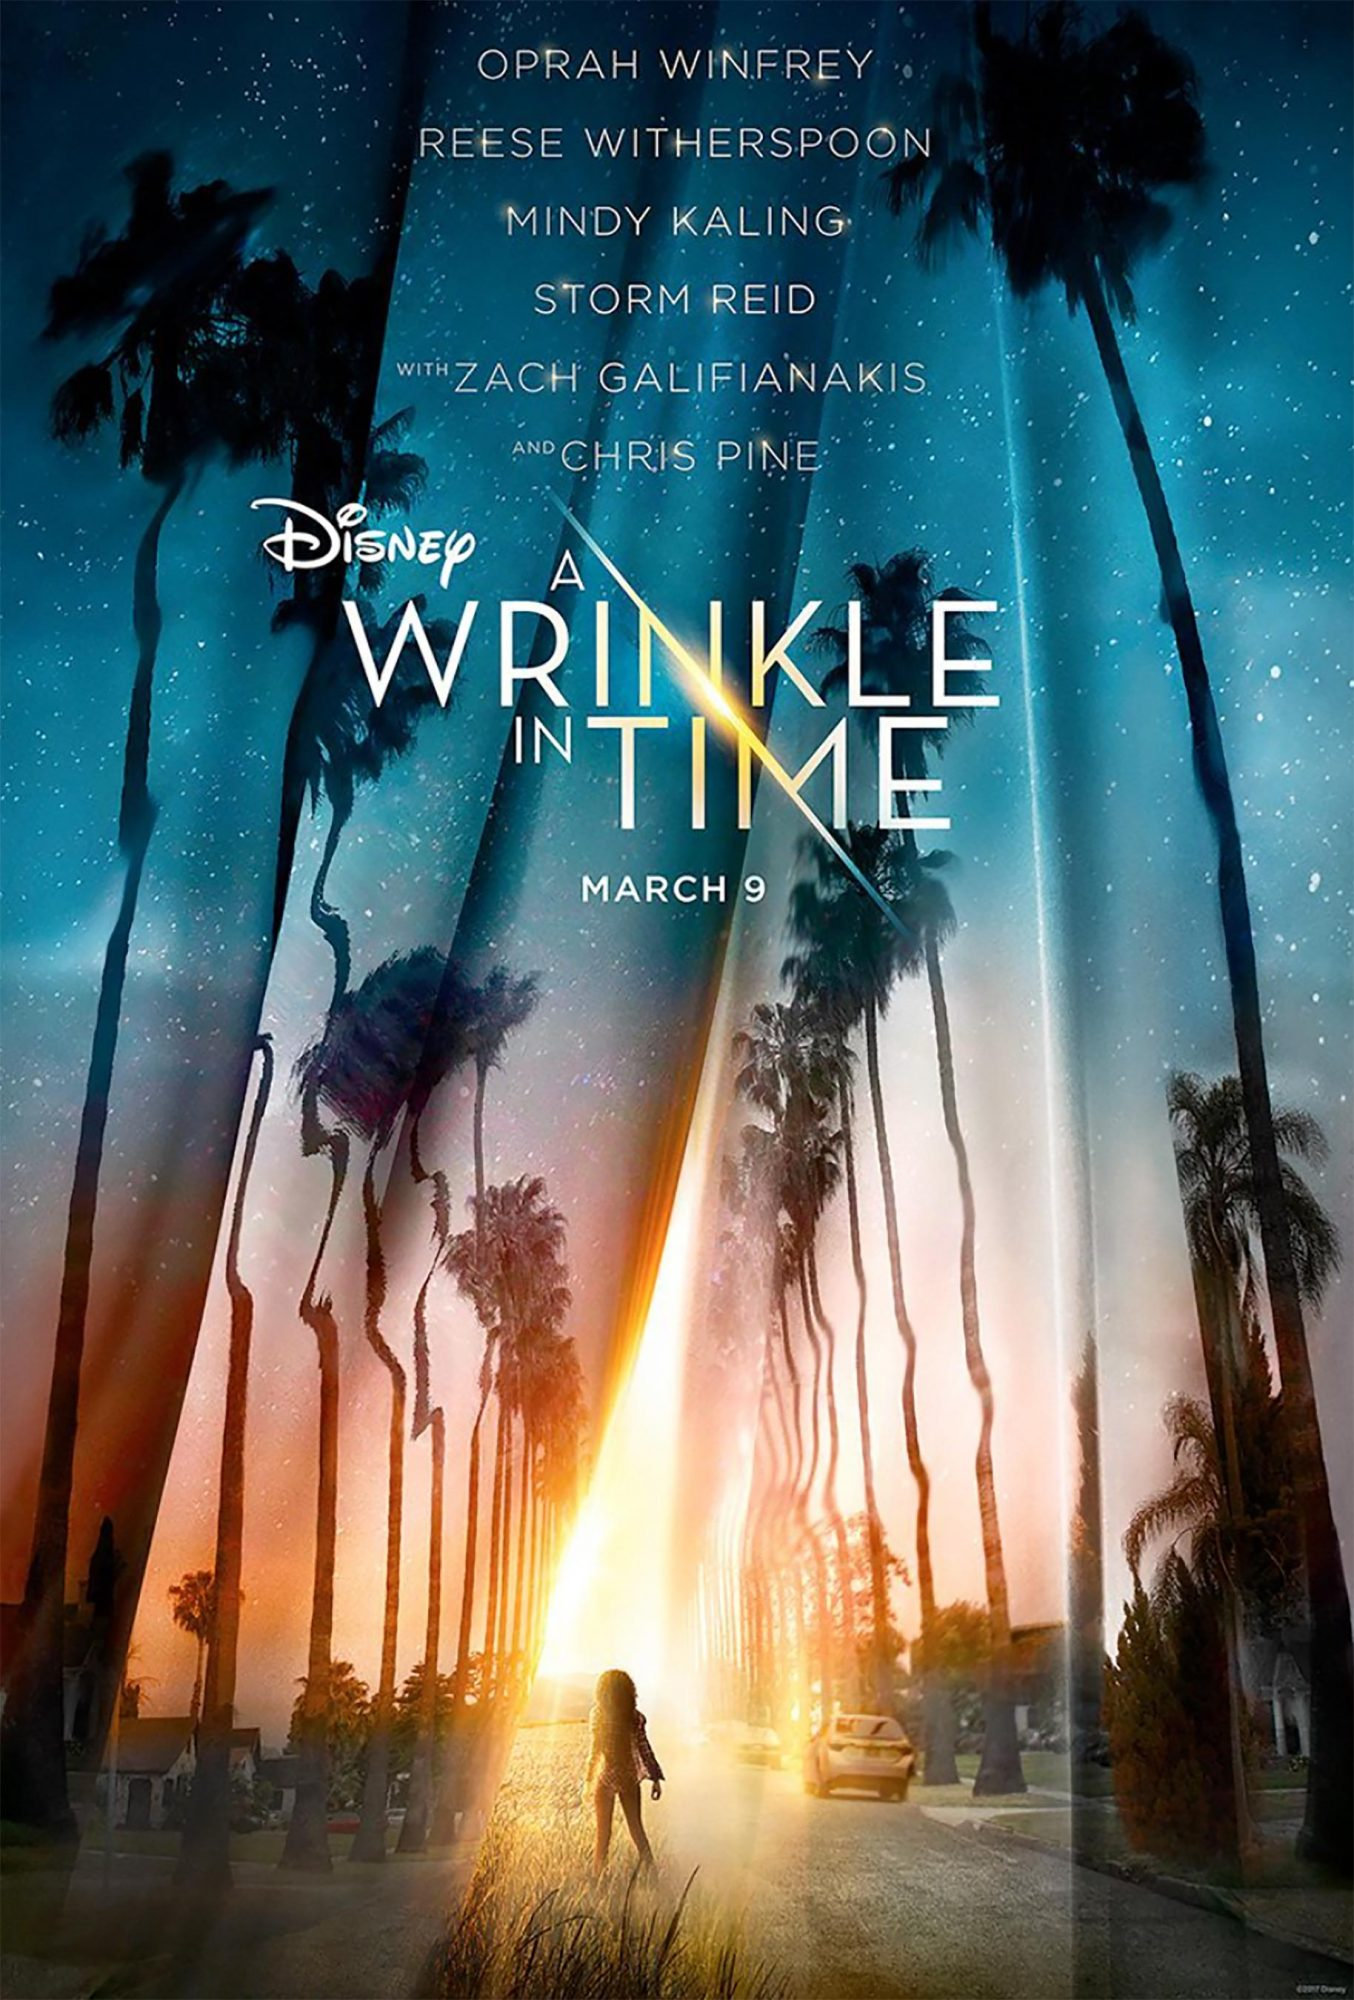 A Wrinkle in Time D23 Poster CR: Disney